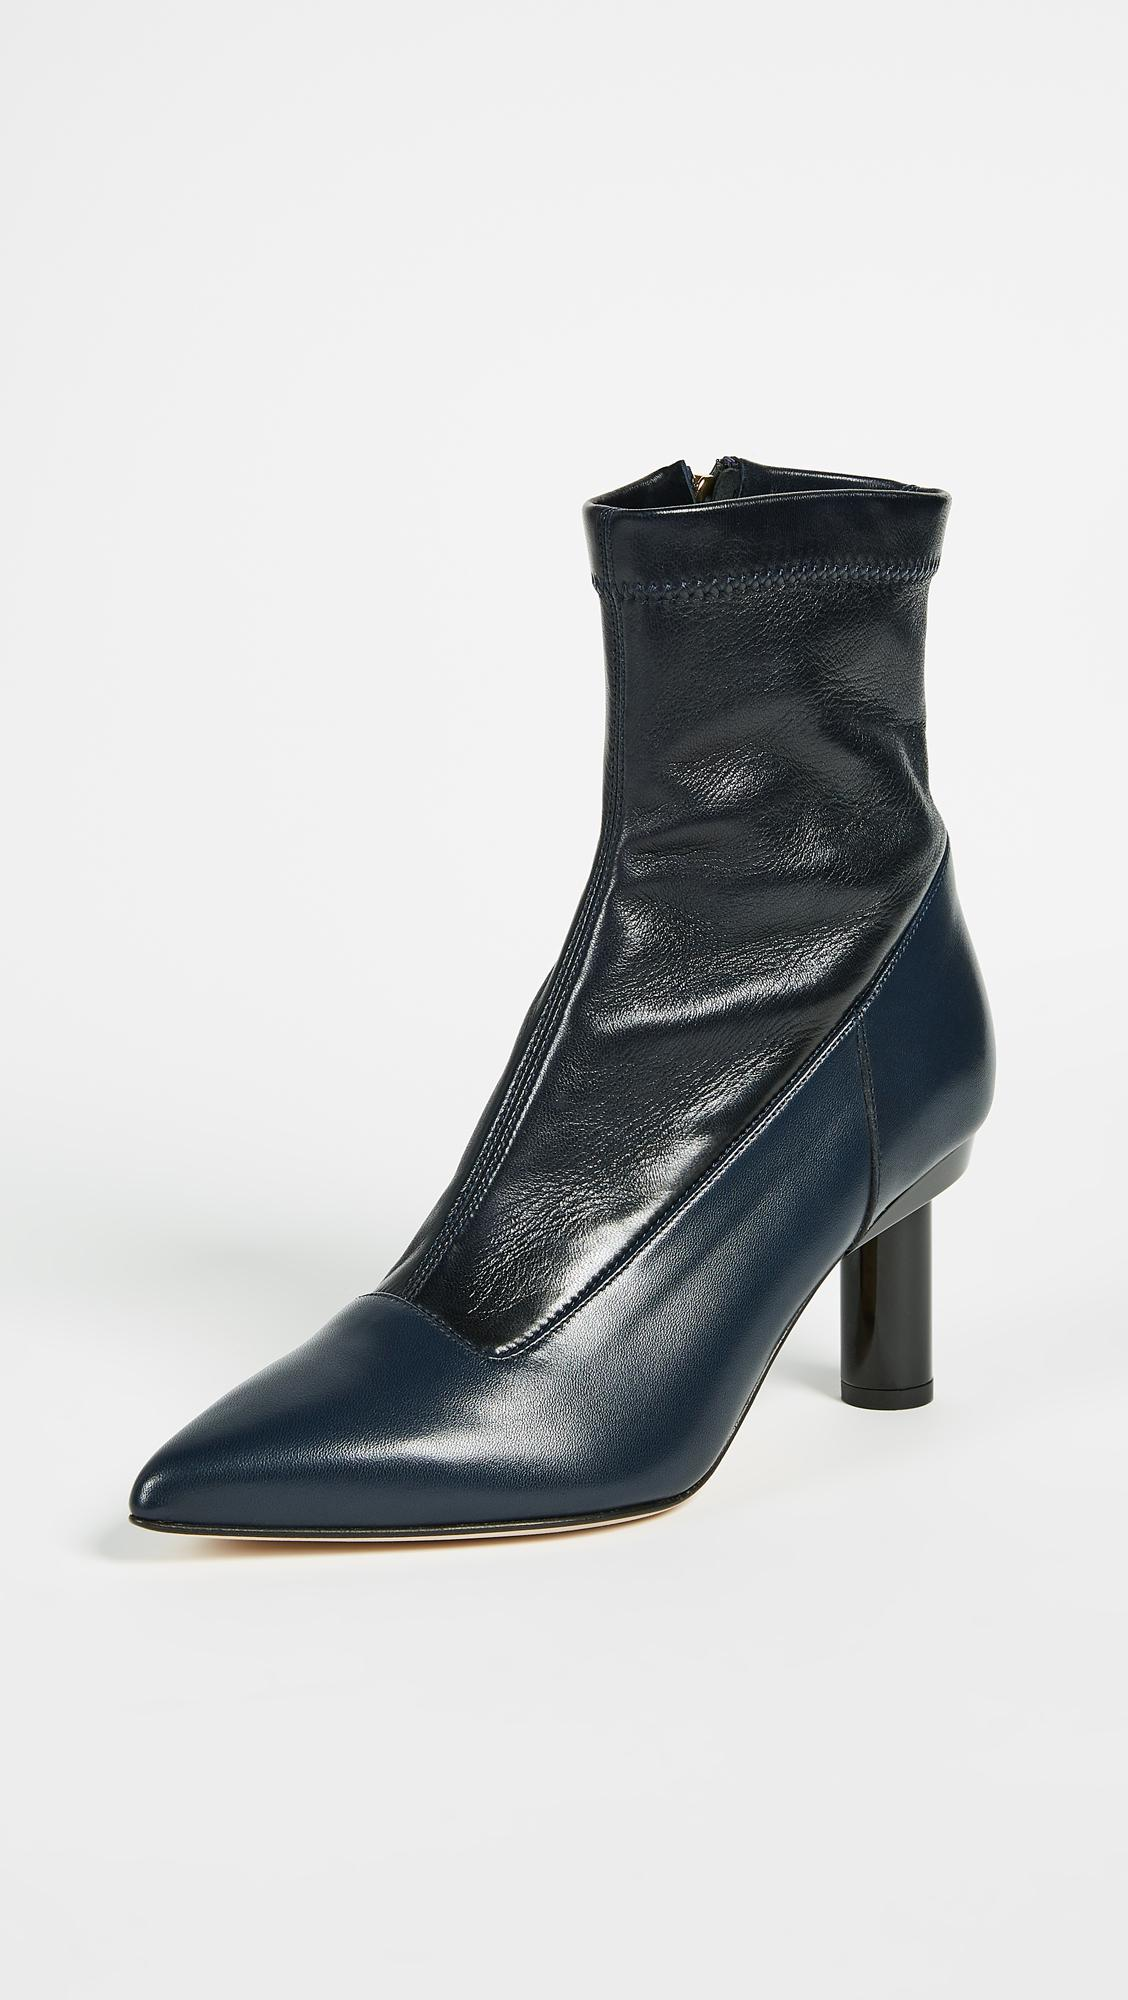 Tibi Round-Toe Ankle Boots free shipping supply XmsJHx